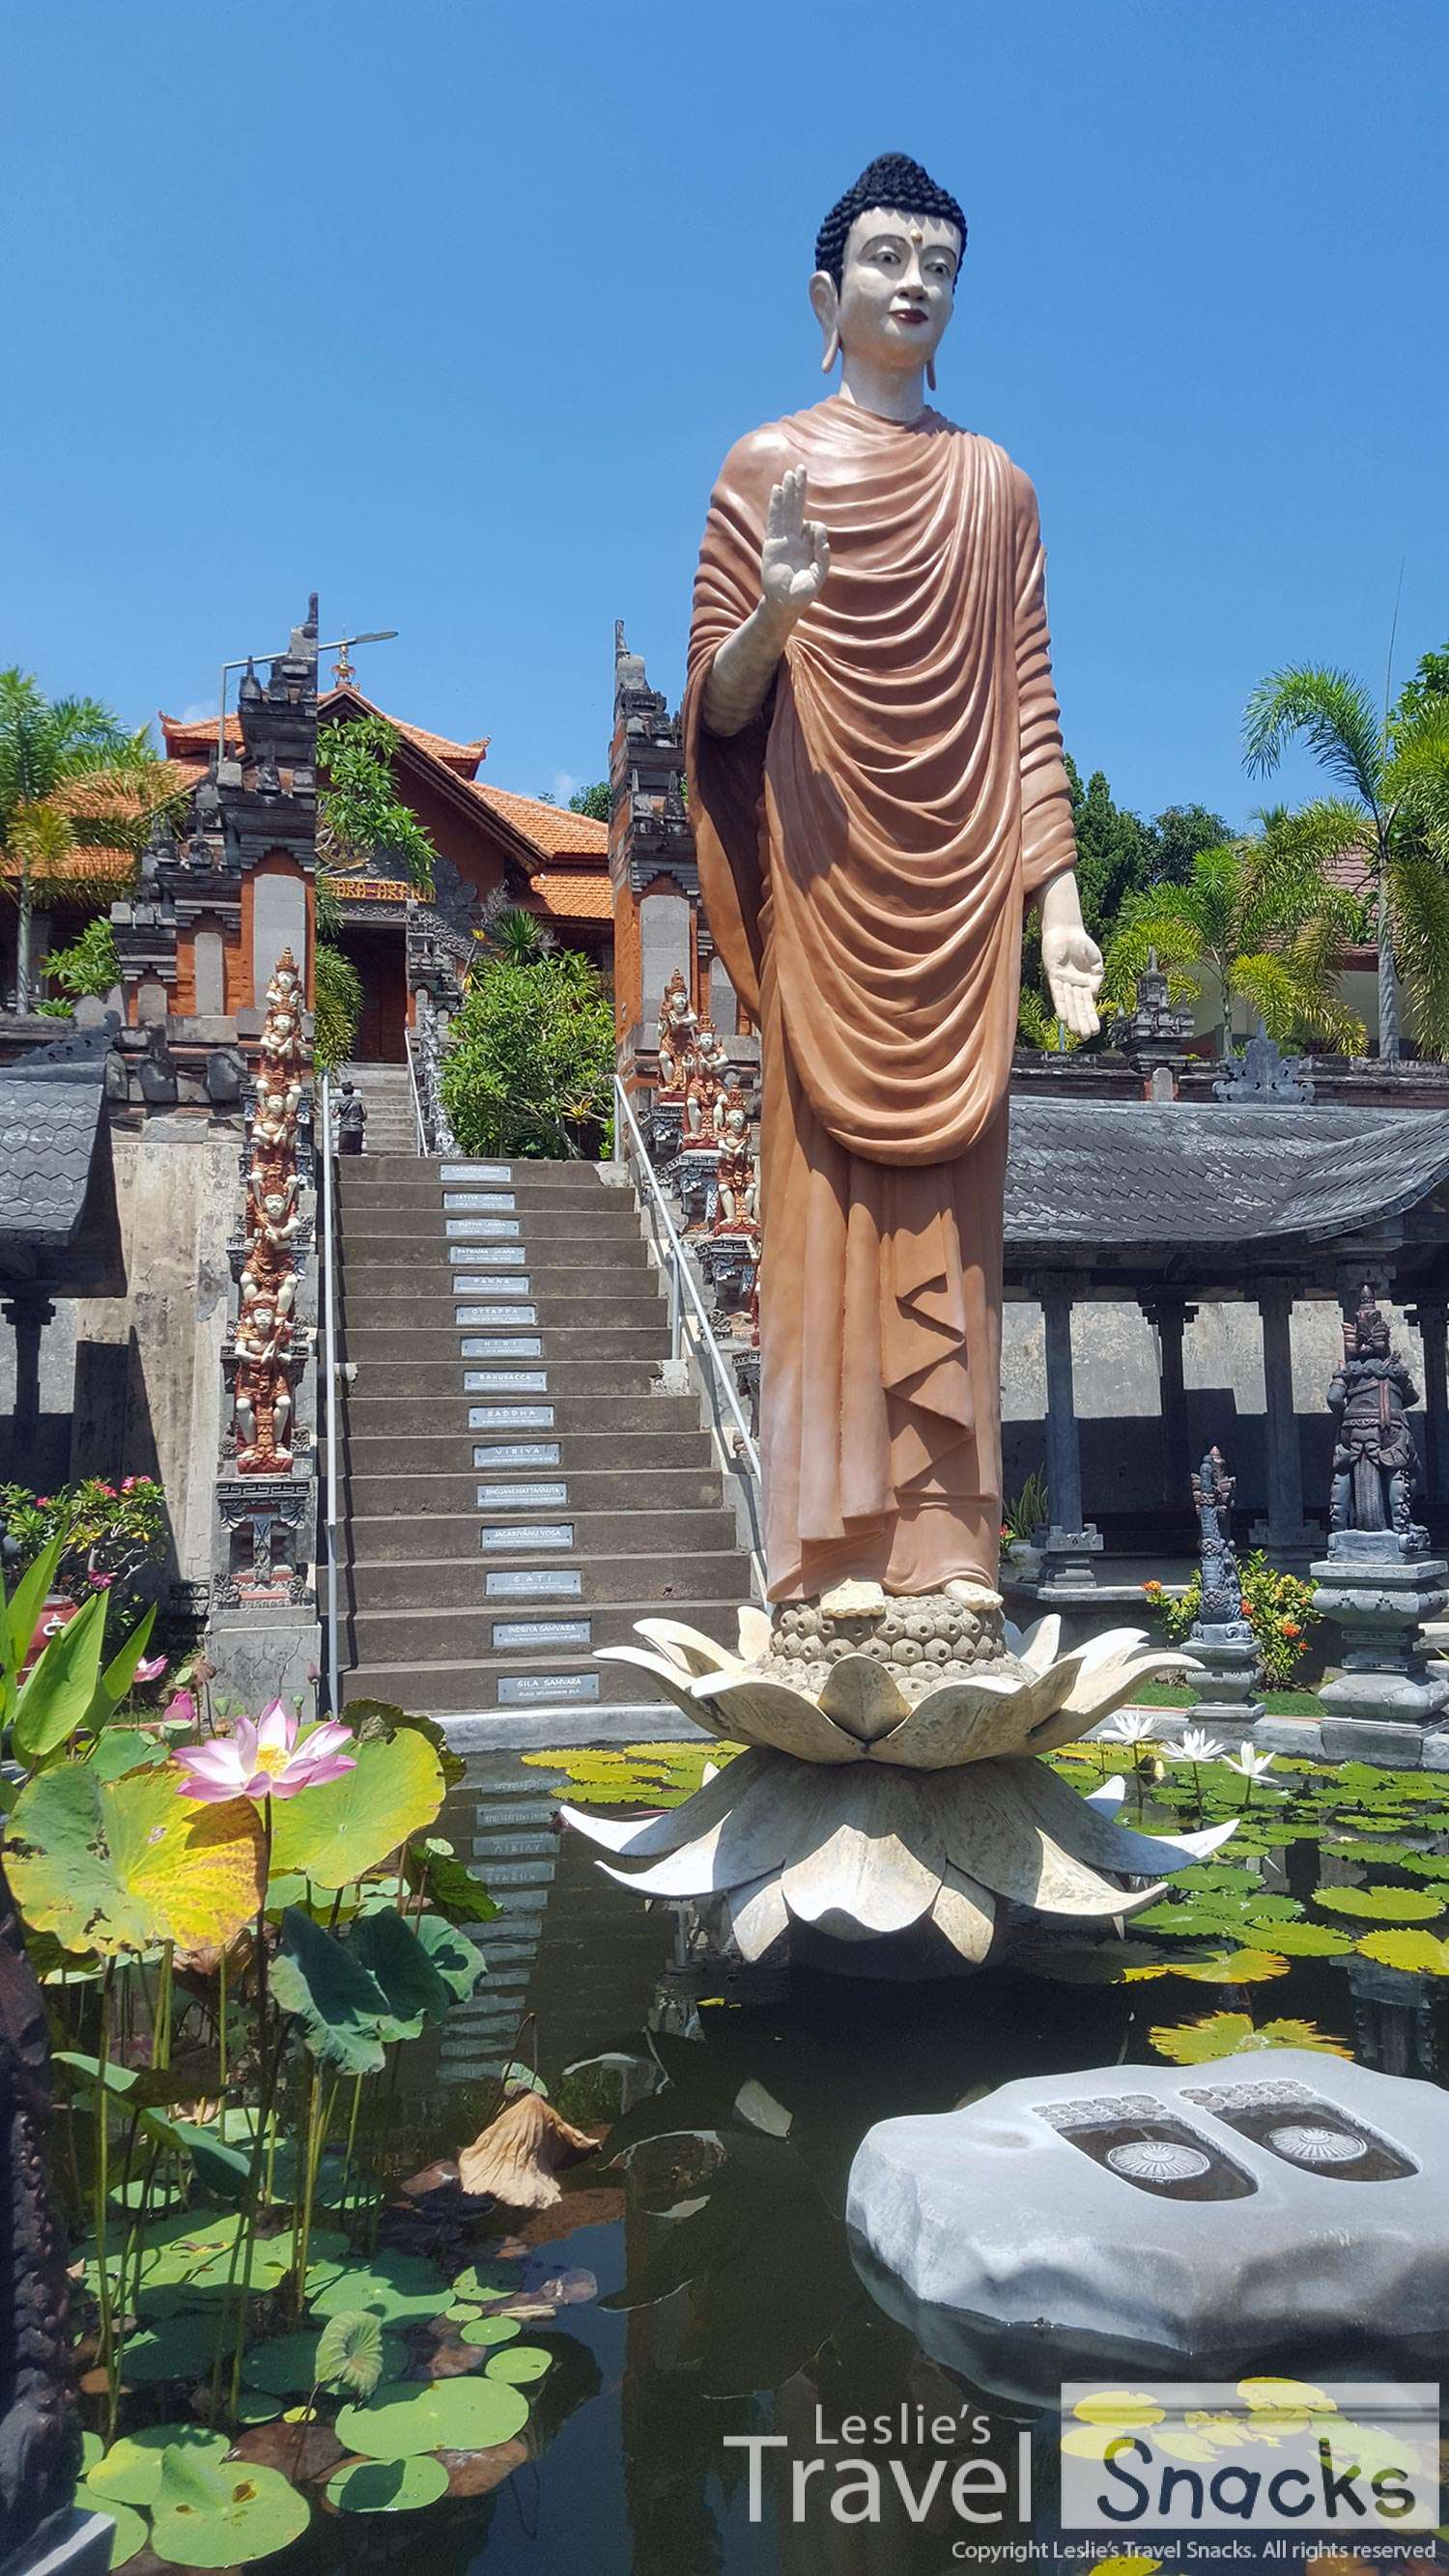 As soon as you enter, it's just gorgeous. Lotus pond with Buddha's footprints and a lot of Hindu style statues making it an interesting combination of cultures.